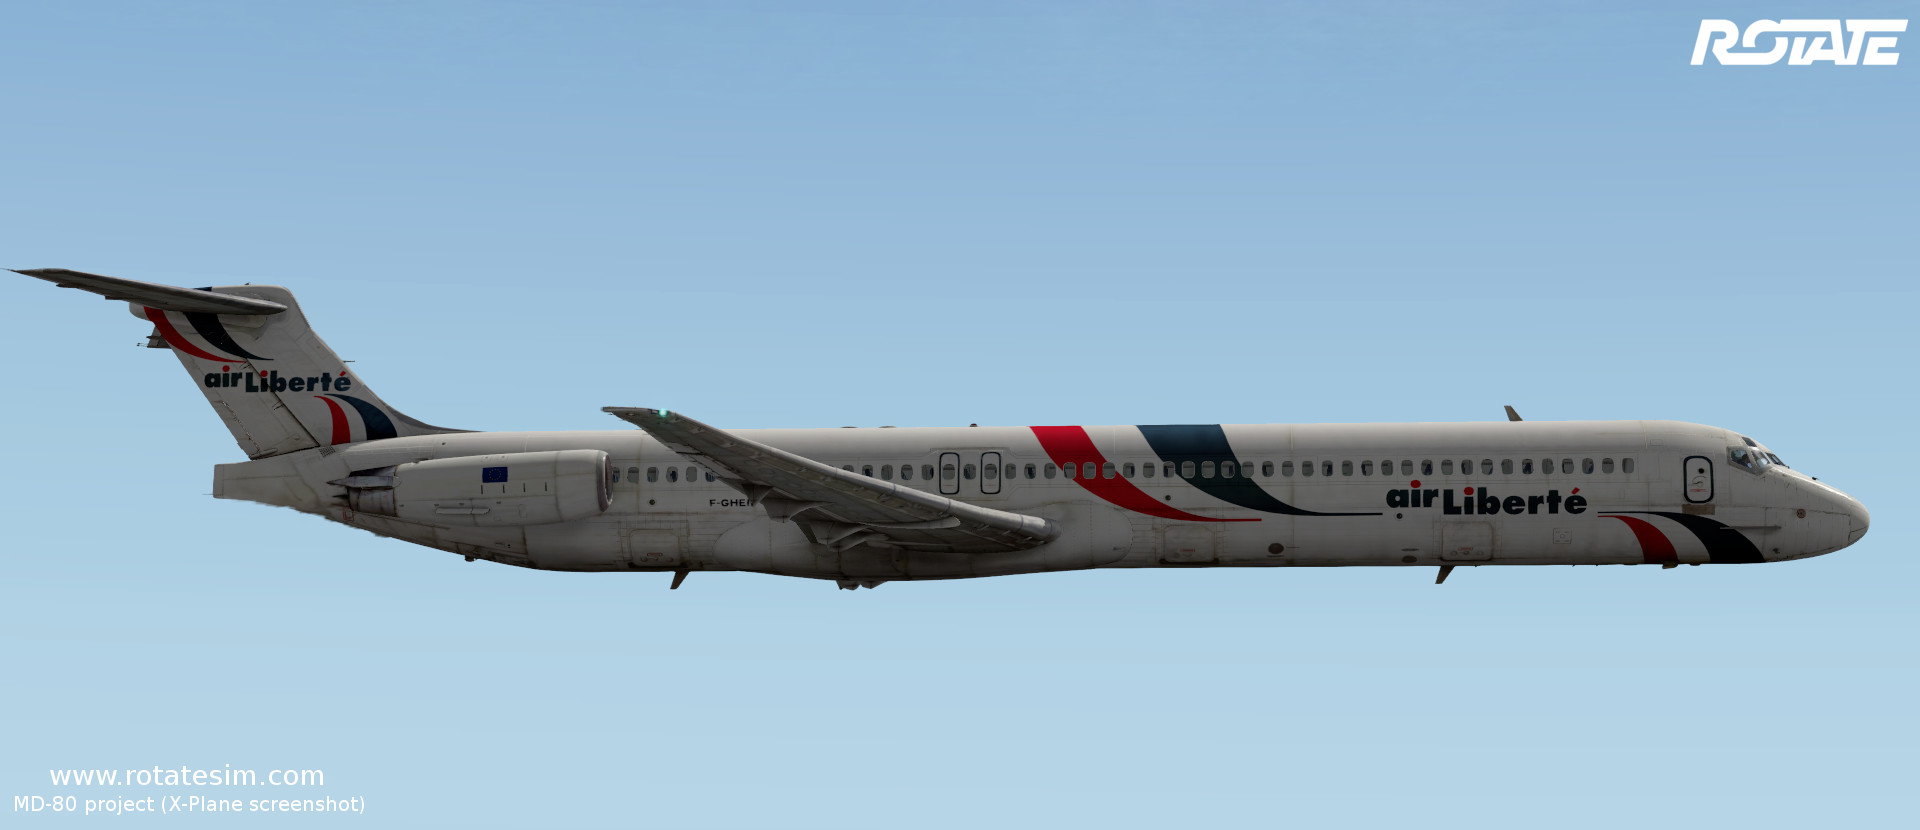 MD-80 liveries - Air Liberté